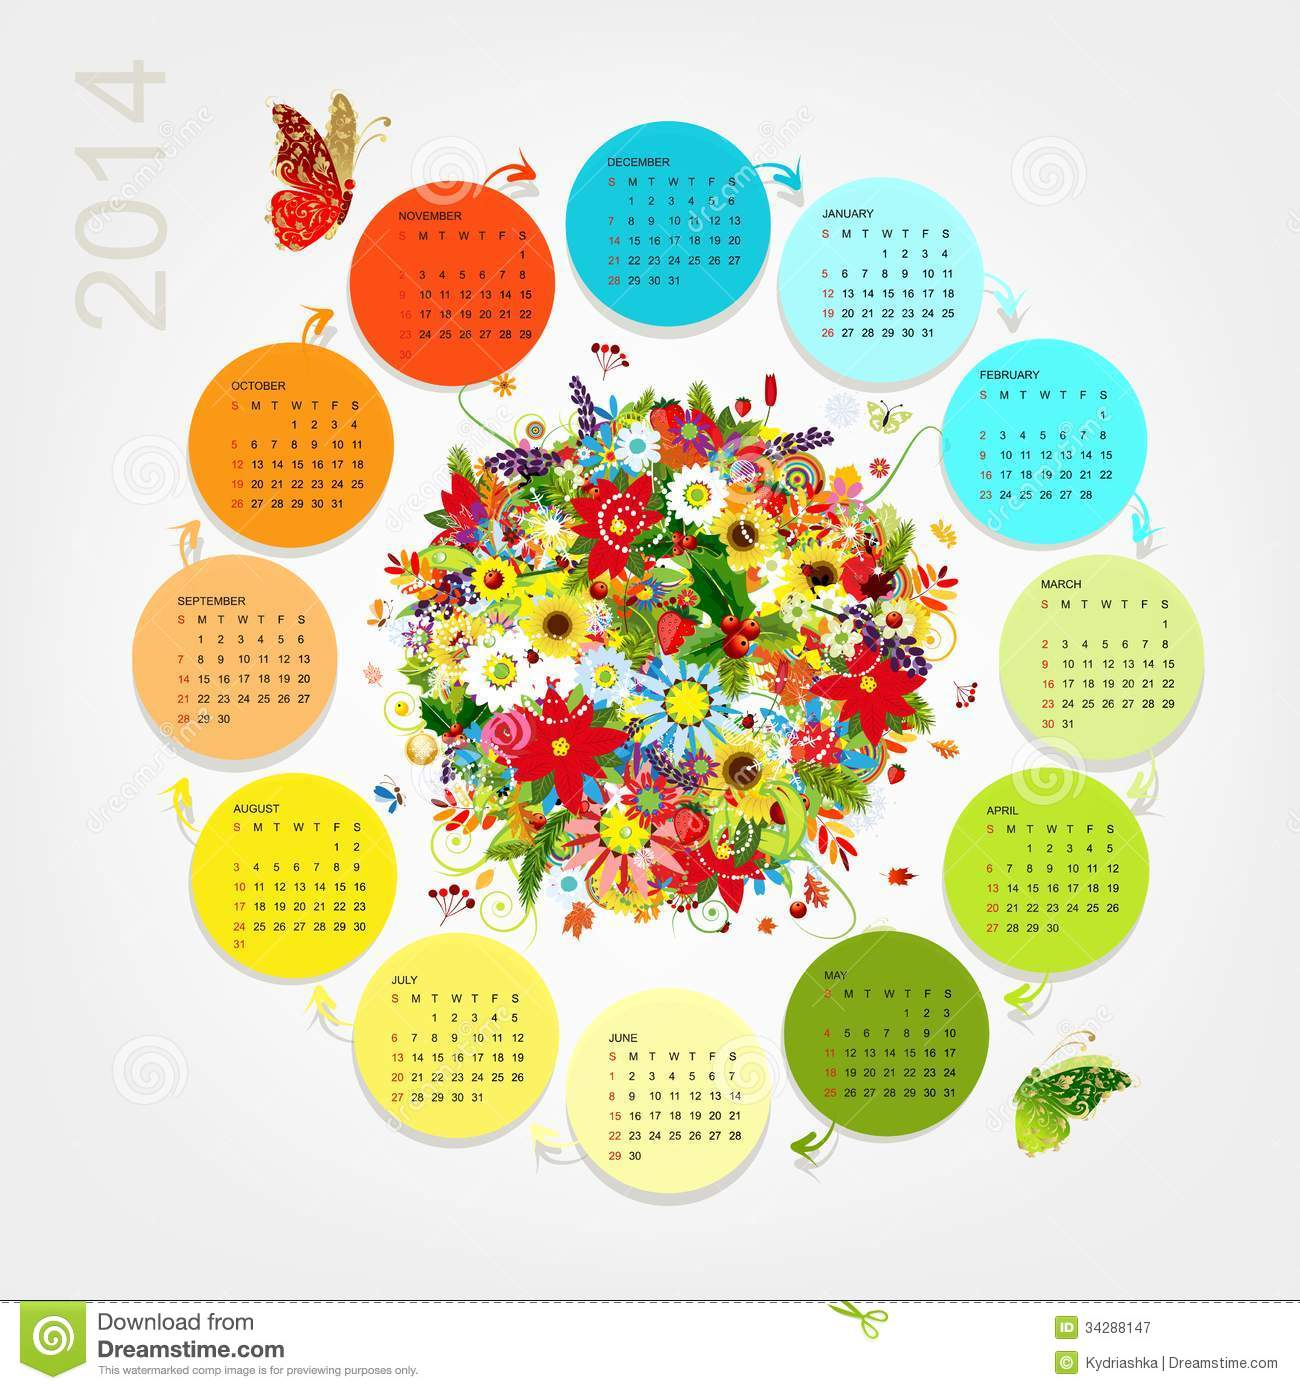 August 2014 Cpo Offers Table Jpg: Calendar 2014 With Four Season Bouquet For Your Stock